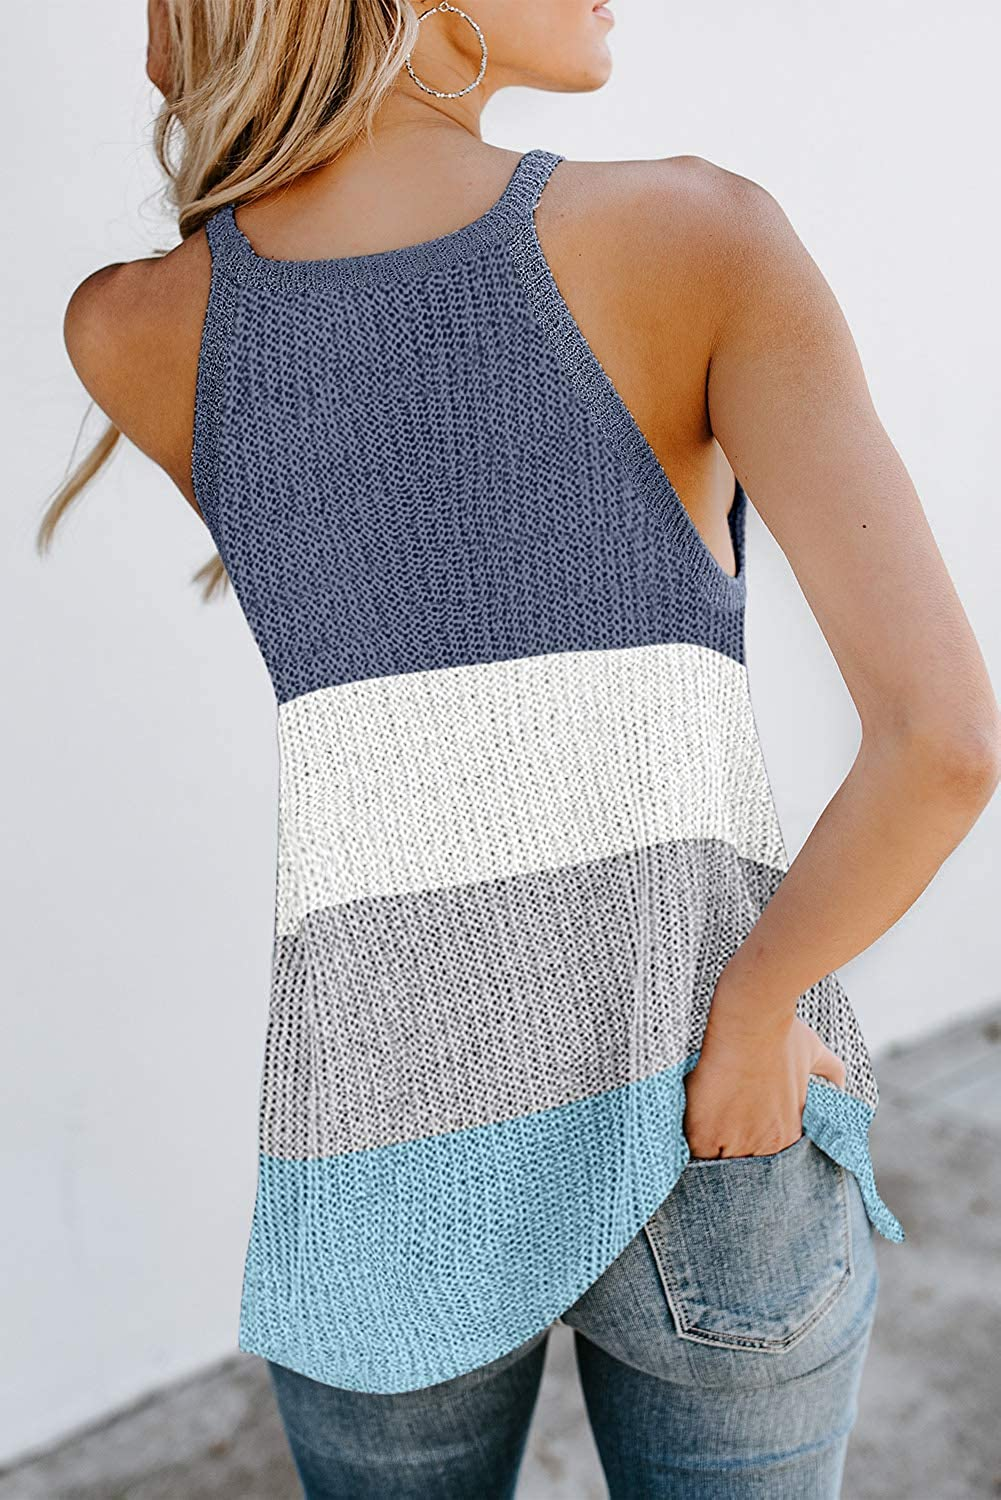 Bakoliza Womens Summer Knit Tank Tops Casual Loose Sleeveless Color Block Striped Camis Blouse Shirts Summer Sweater Vest